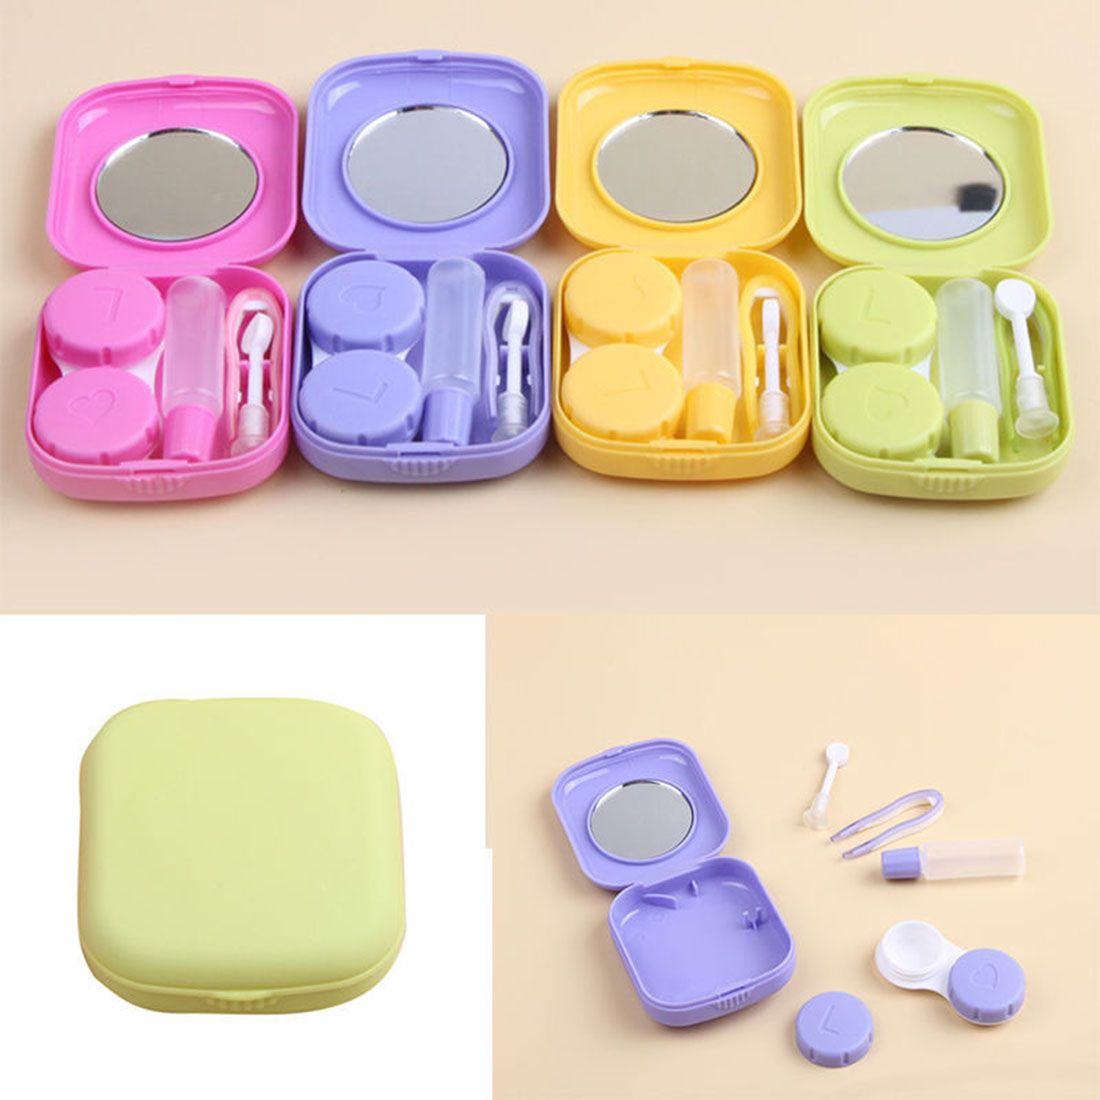 Fashion Portable Cute Pocket Mini Contact Lens Case Travel Kit Mirror Container 5colors Contact Lenses Contact Lenses Case Travel Kits